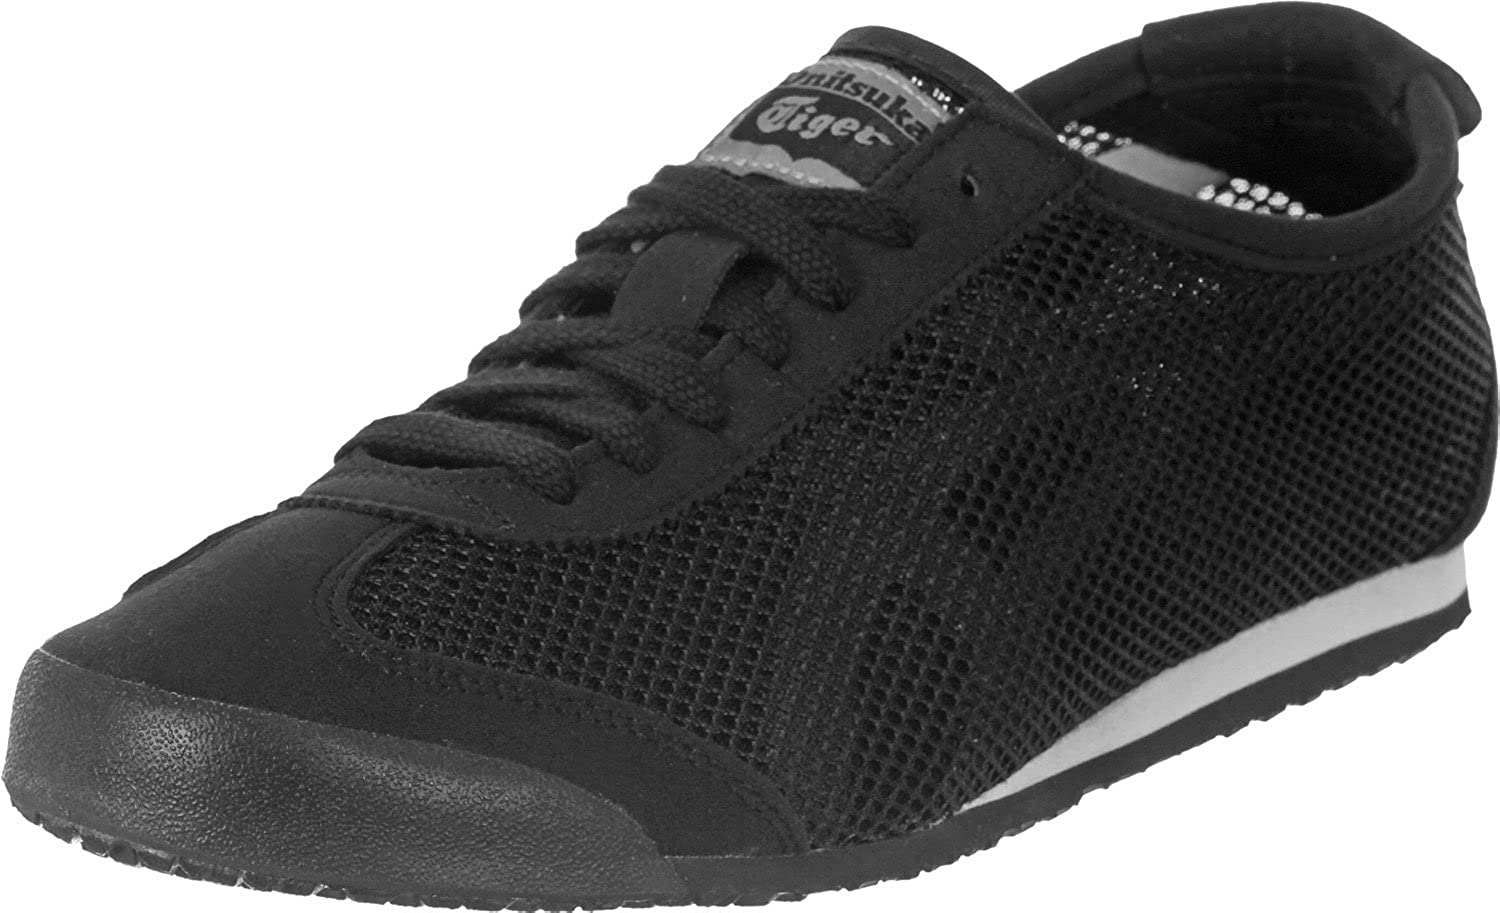 factory price 2707c 59625 Onitsuka Tiger Mexico 66, Unisex-Adults' Trainers